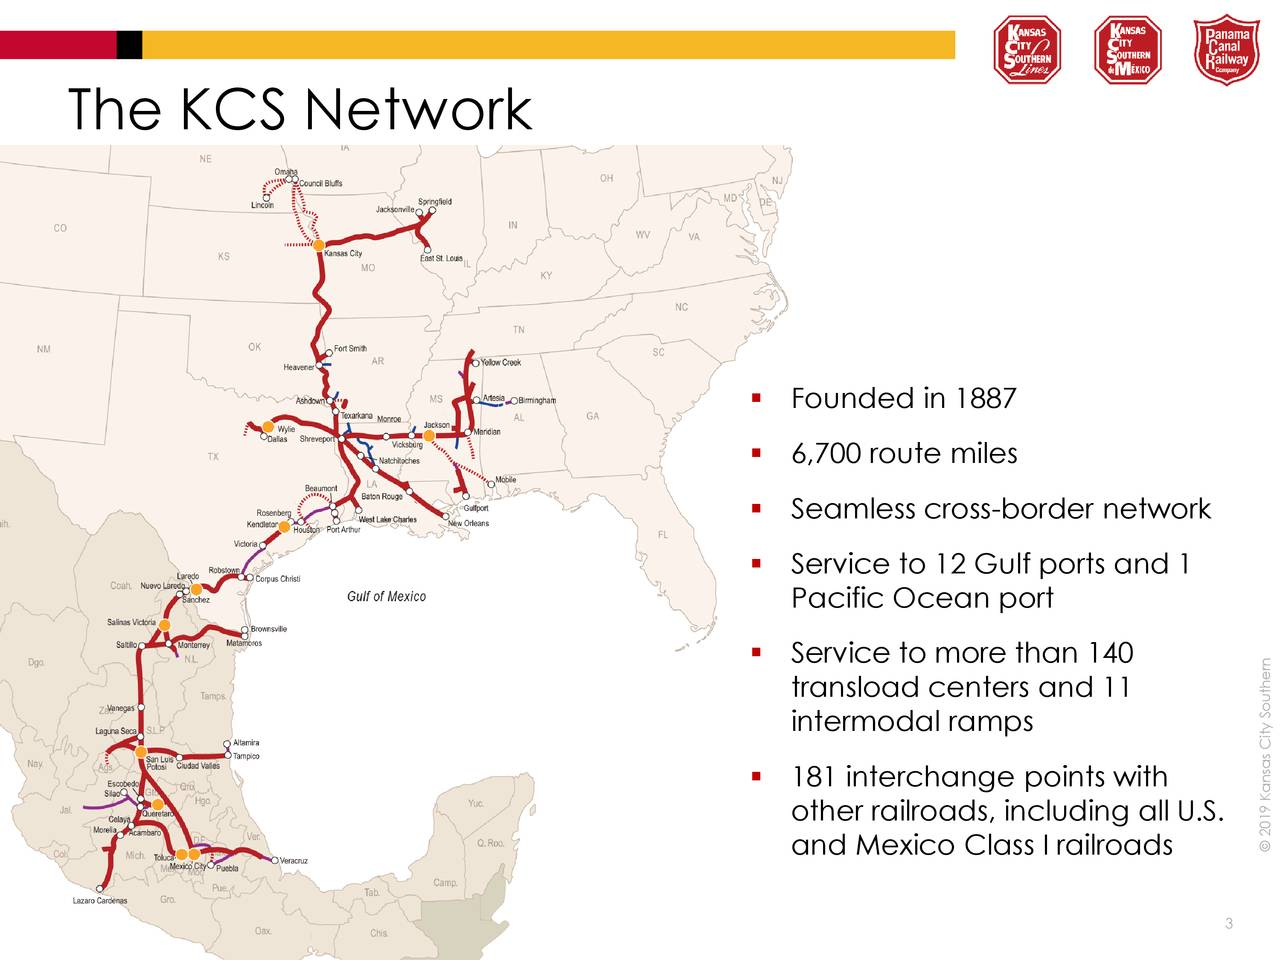  Founded in 1887  6,700 route miles  Seamless cross-border network  Service to 12 Gulf ports and 1 Pacific Ocean port  Service to more than 140 transload centers and 11 intermodal ramps  181 interchange points with other railroads, including all U.S. and Mexico Class I railroads © 2019 Kansas City Southern 3